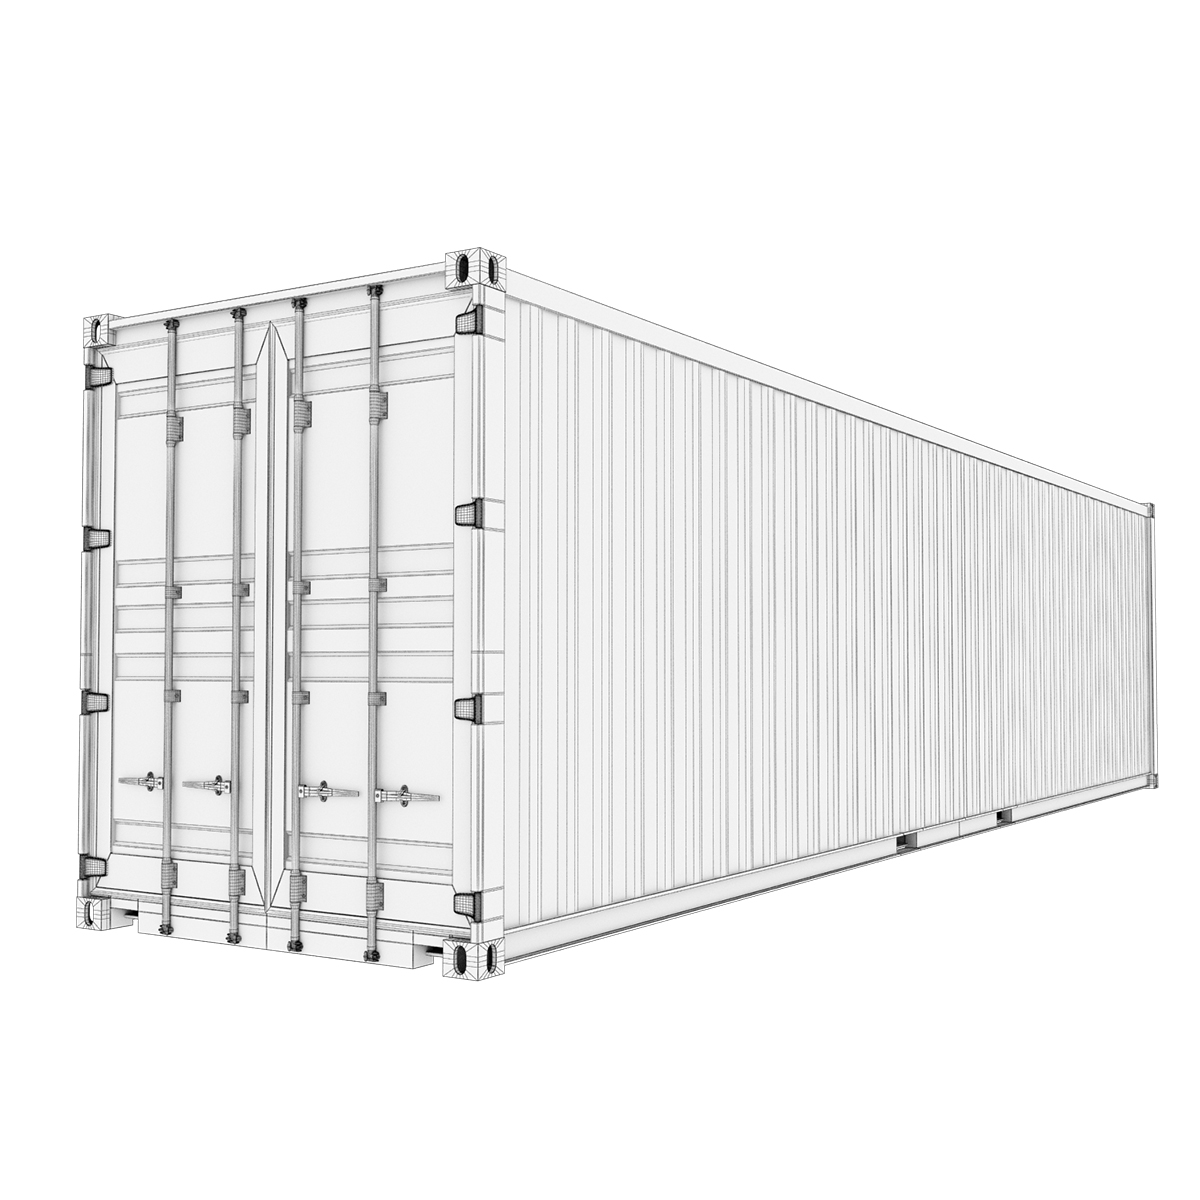 40 feet high cube maersk shipping container 3d model max fbx ma mb texture obj 278437